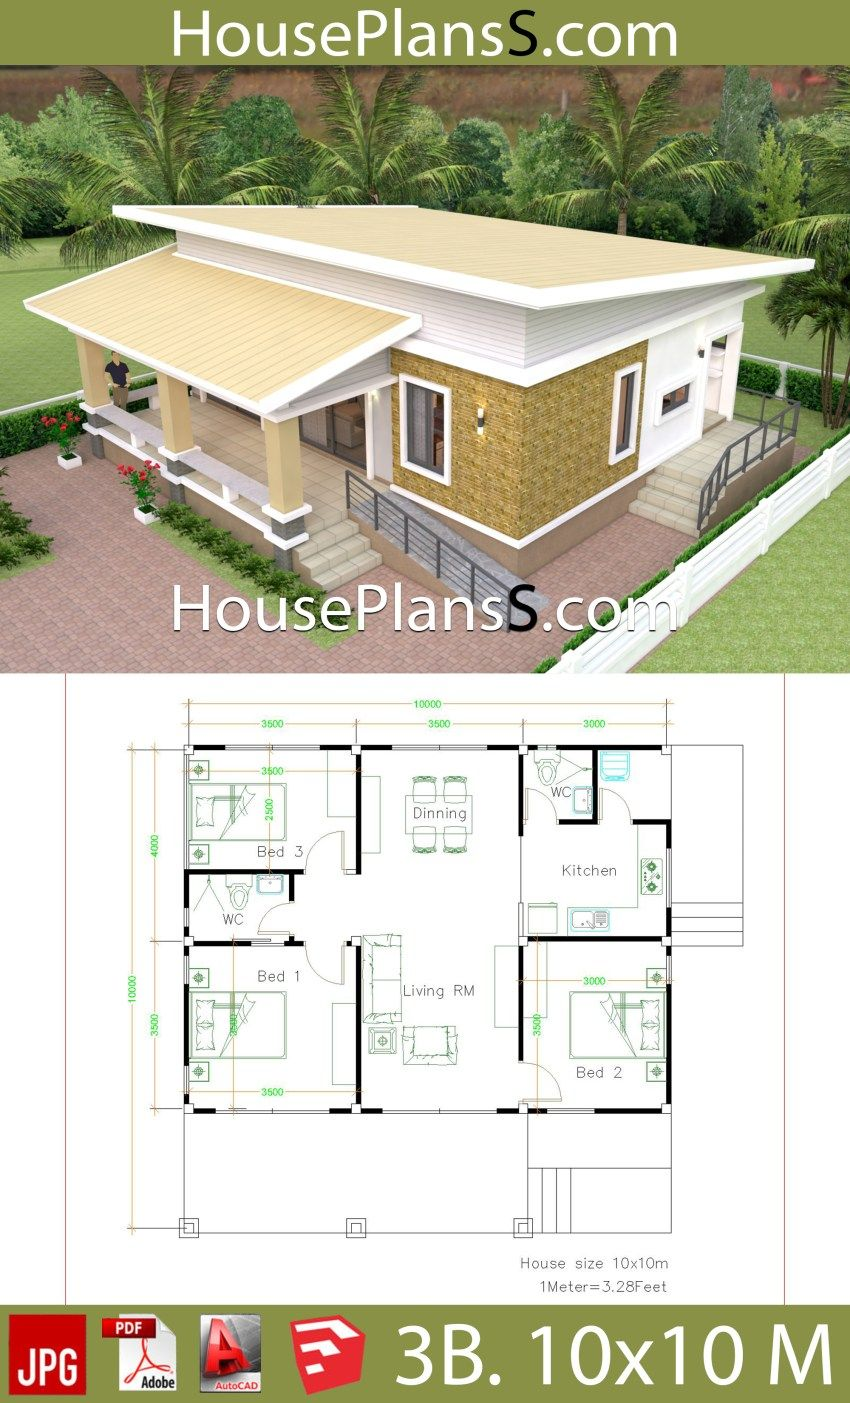 10x10 Living Room Design: House Design Plans 10x10 With 3 Bedrooms Full Interior